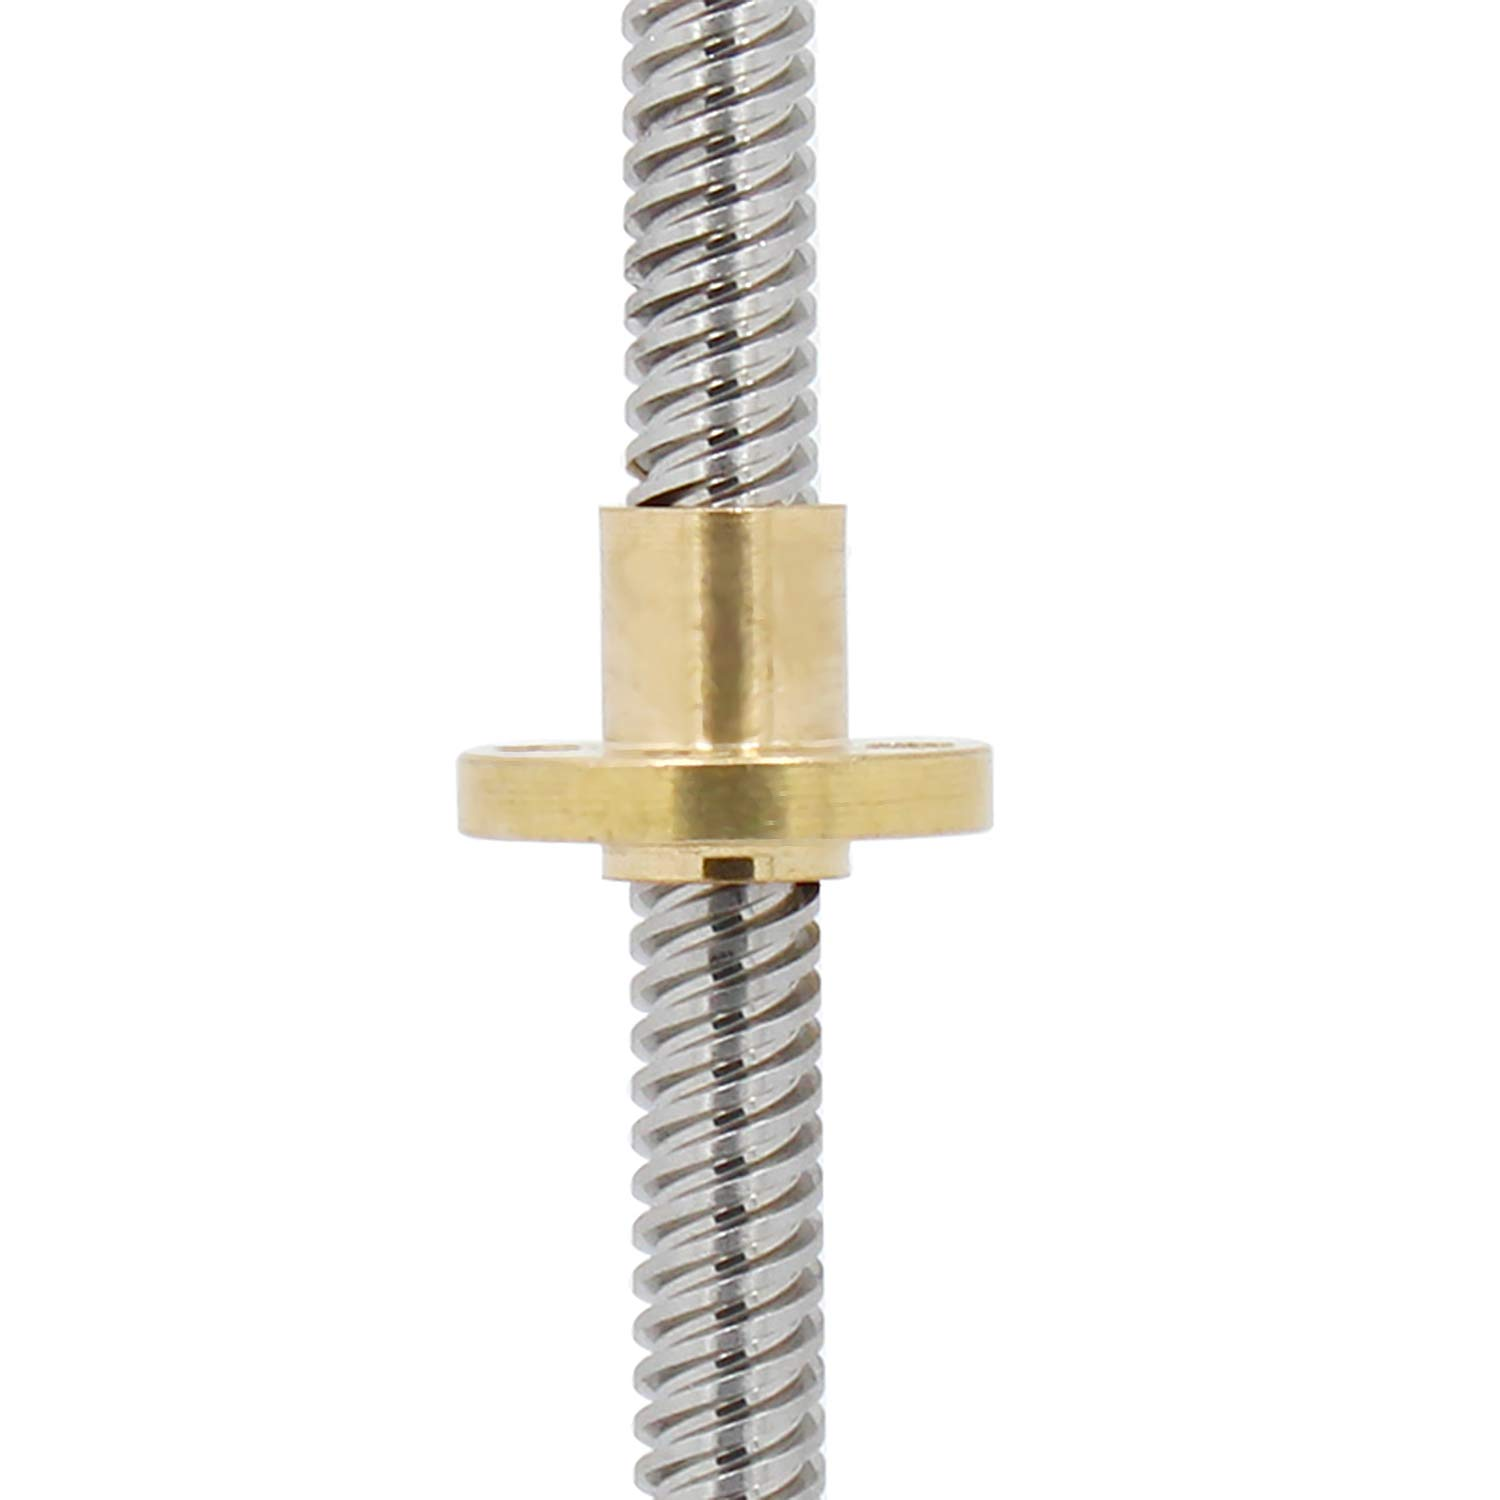 T8 Lead Screw Length 250mm 300mm 350mm 400mm 500mm for RepRap 3D Printers Parts Trapezoidal Screw Copper Nuts Leadscrew Part